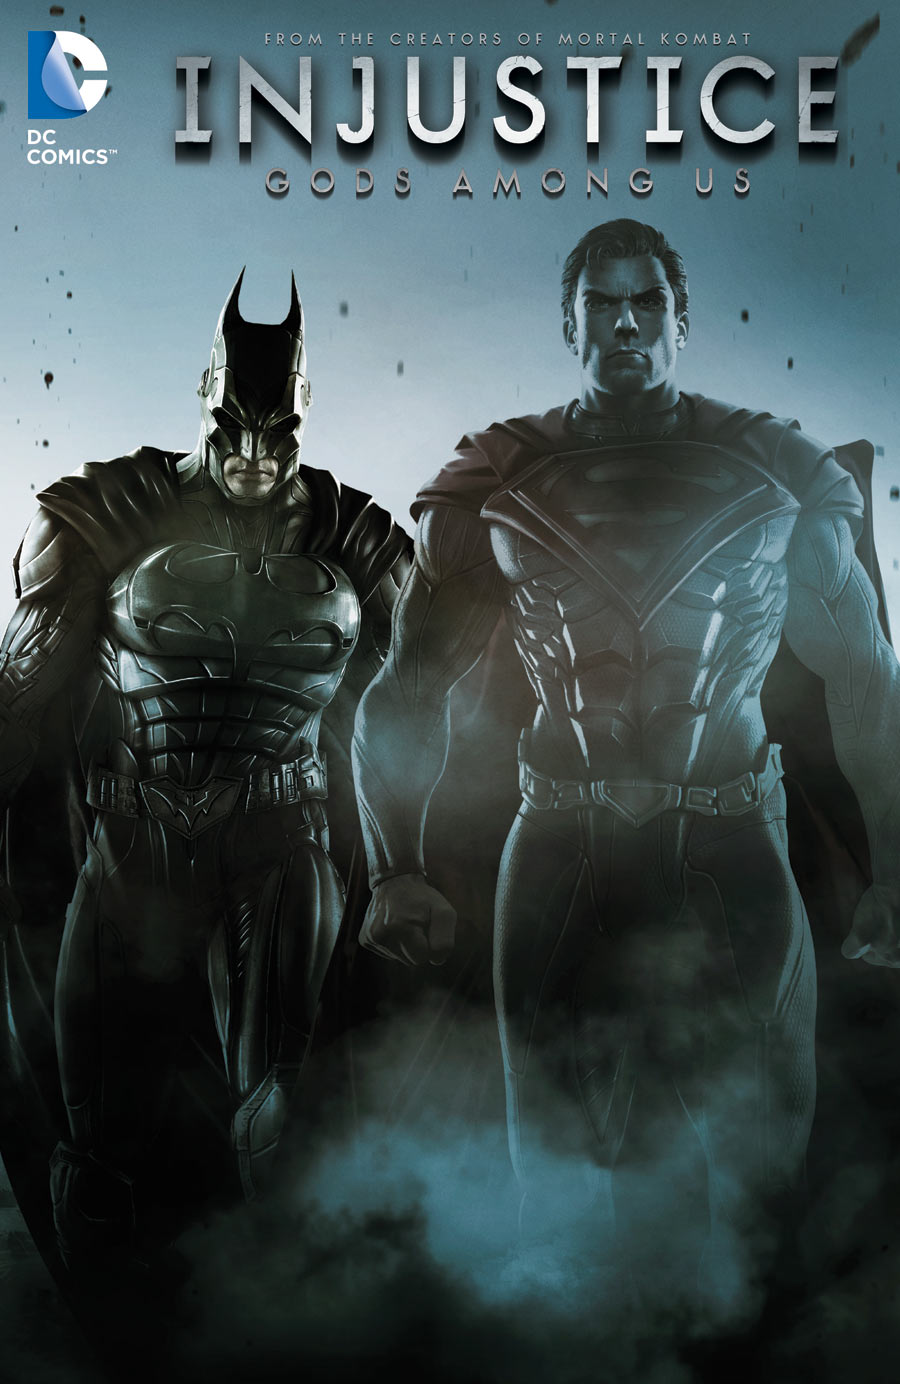 Injustice gods among us vol 2 collected dc database fandom cover for the injustice gods among us vol 2 trade paperback cover for the injustice gods among us vol 2 trade paperback voltagebd Images